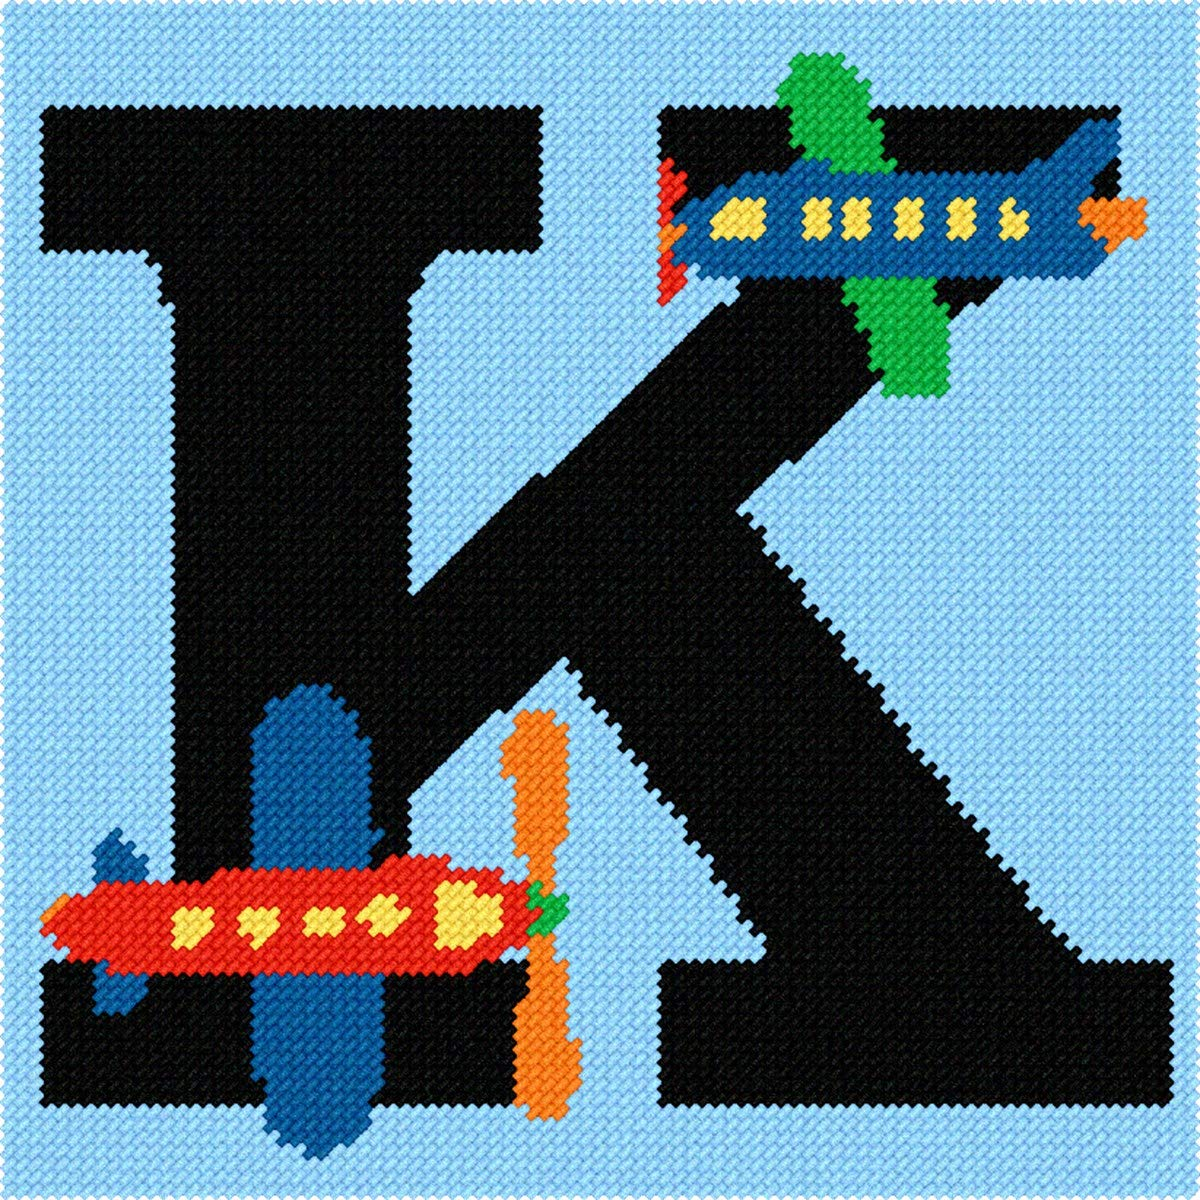 Pepita Letter K Airplane Needlepoint Kit Pepita Needlepoint